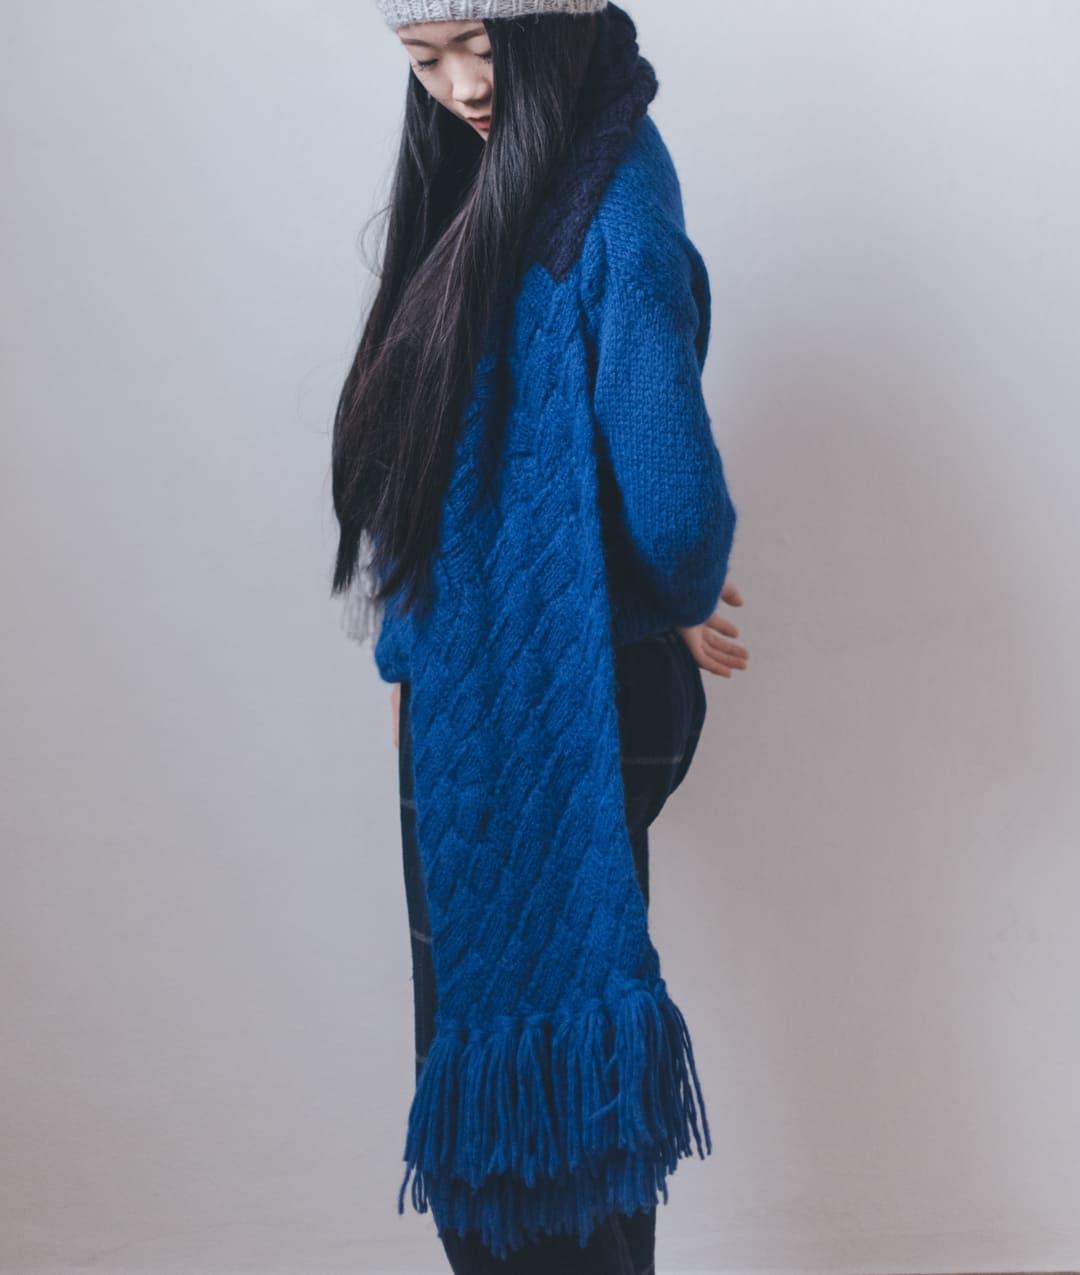 Sweaters and Tops - WoolScarves and Snoods - Wool - QUEEN SCARF - 1